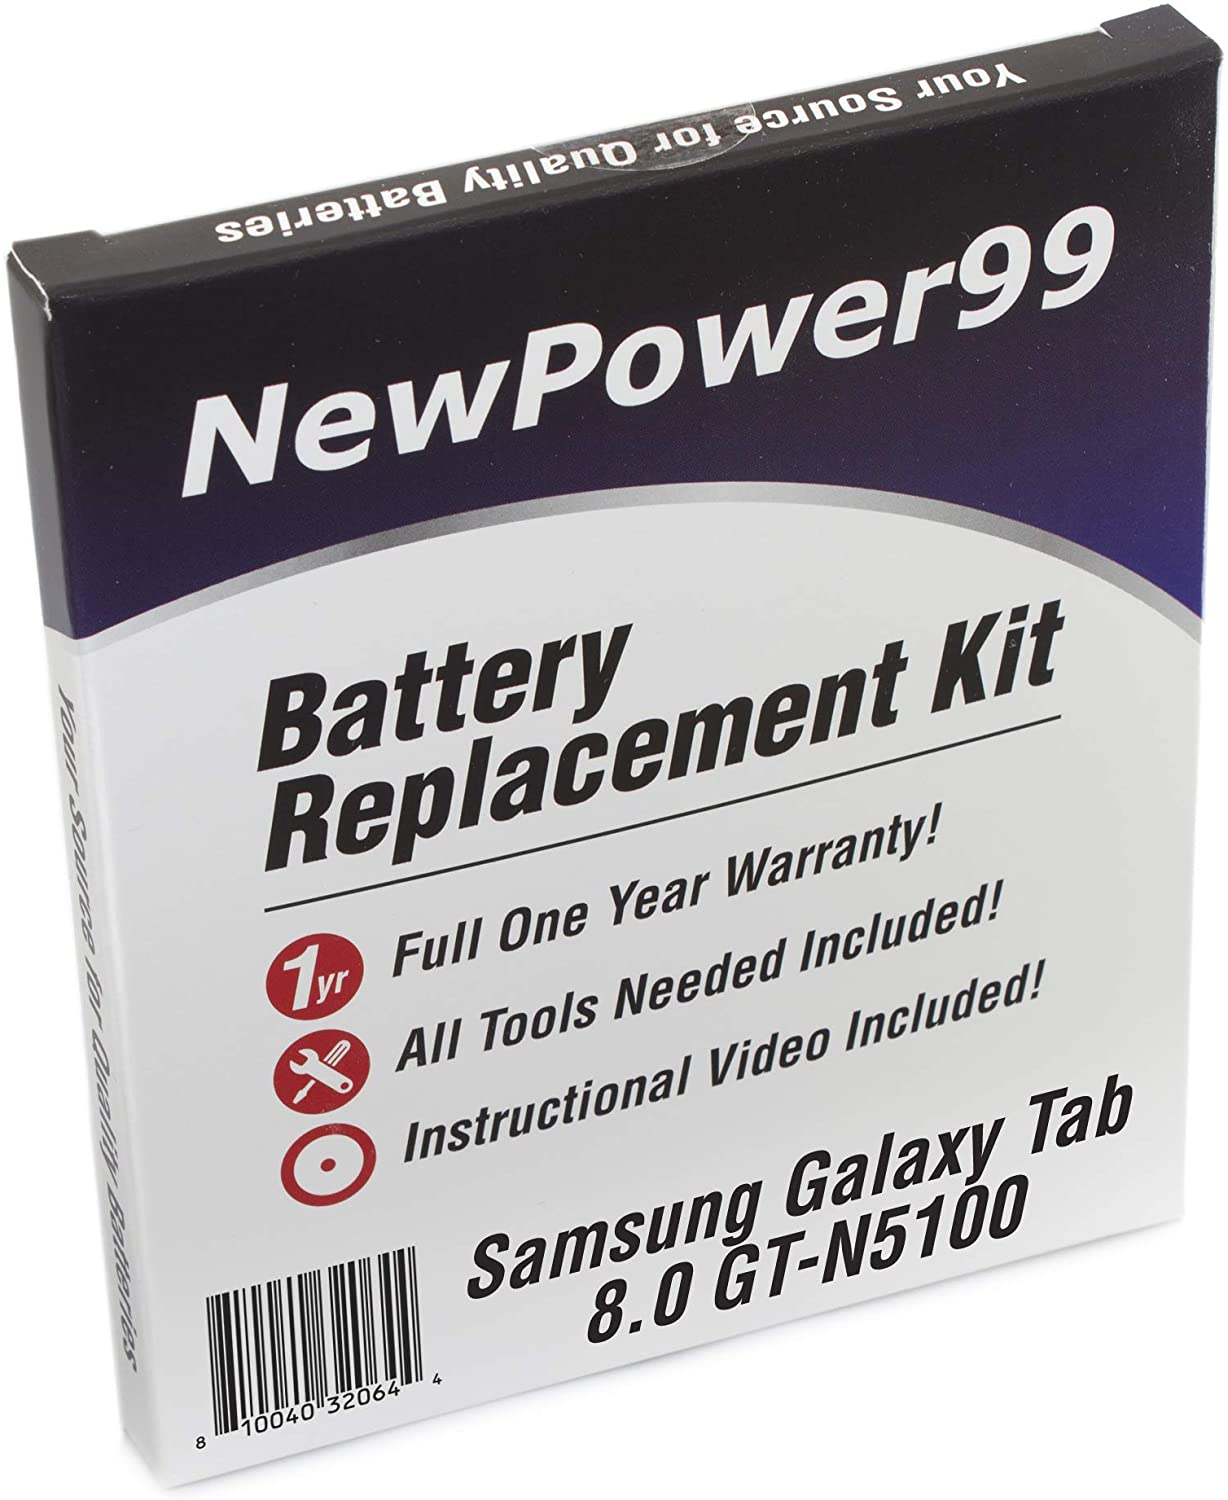 Battery Kit for Samsung Galaxy Note 8.0 GT-N5100 with Tools, How-to Video, Battery from NewPower99